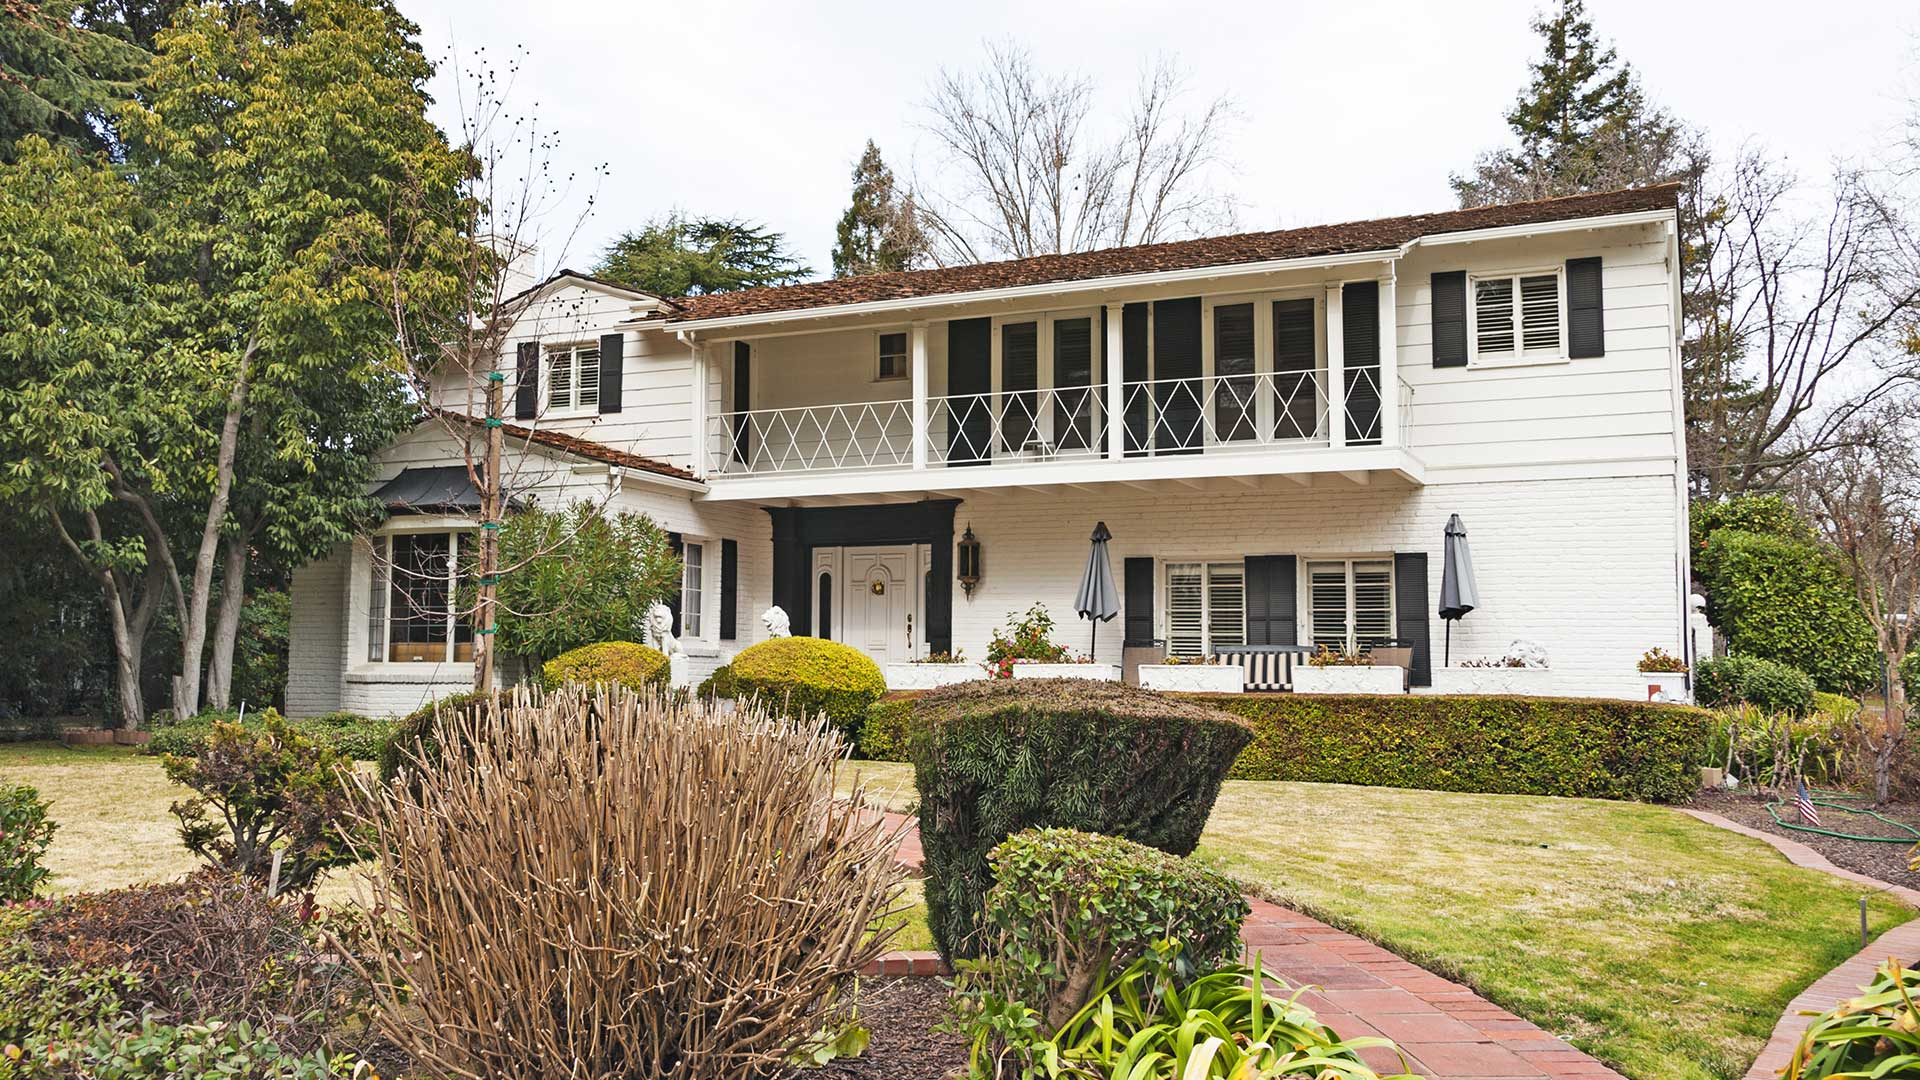 The Sacramento housing market is hot – are you ready?